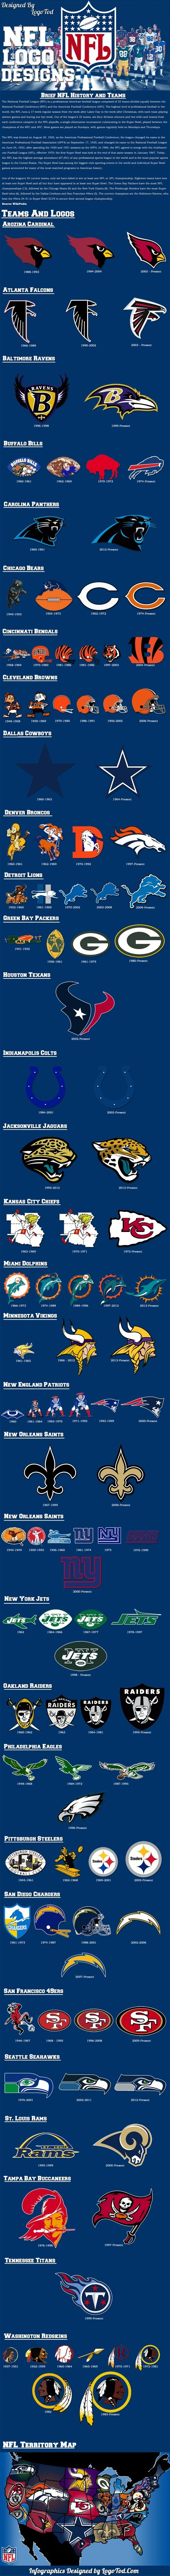 The History of NFL Logo Designs - Blog About Infographics and Data Visualization - Cool Infographics